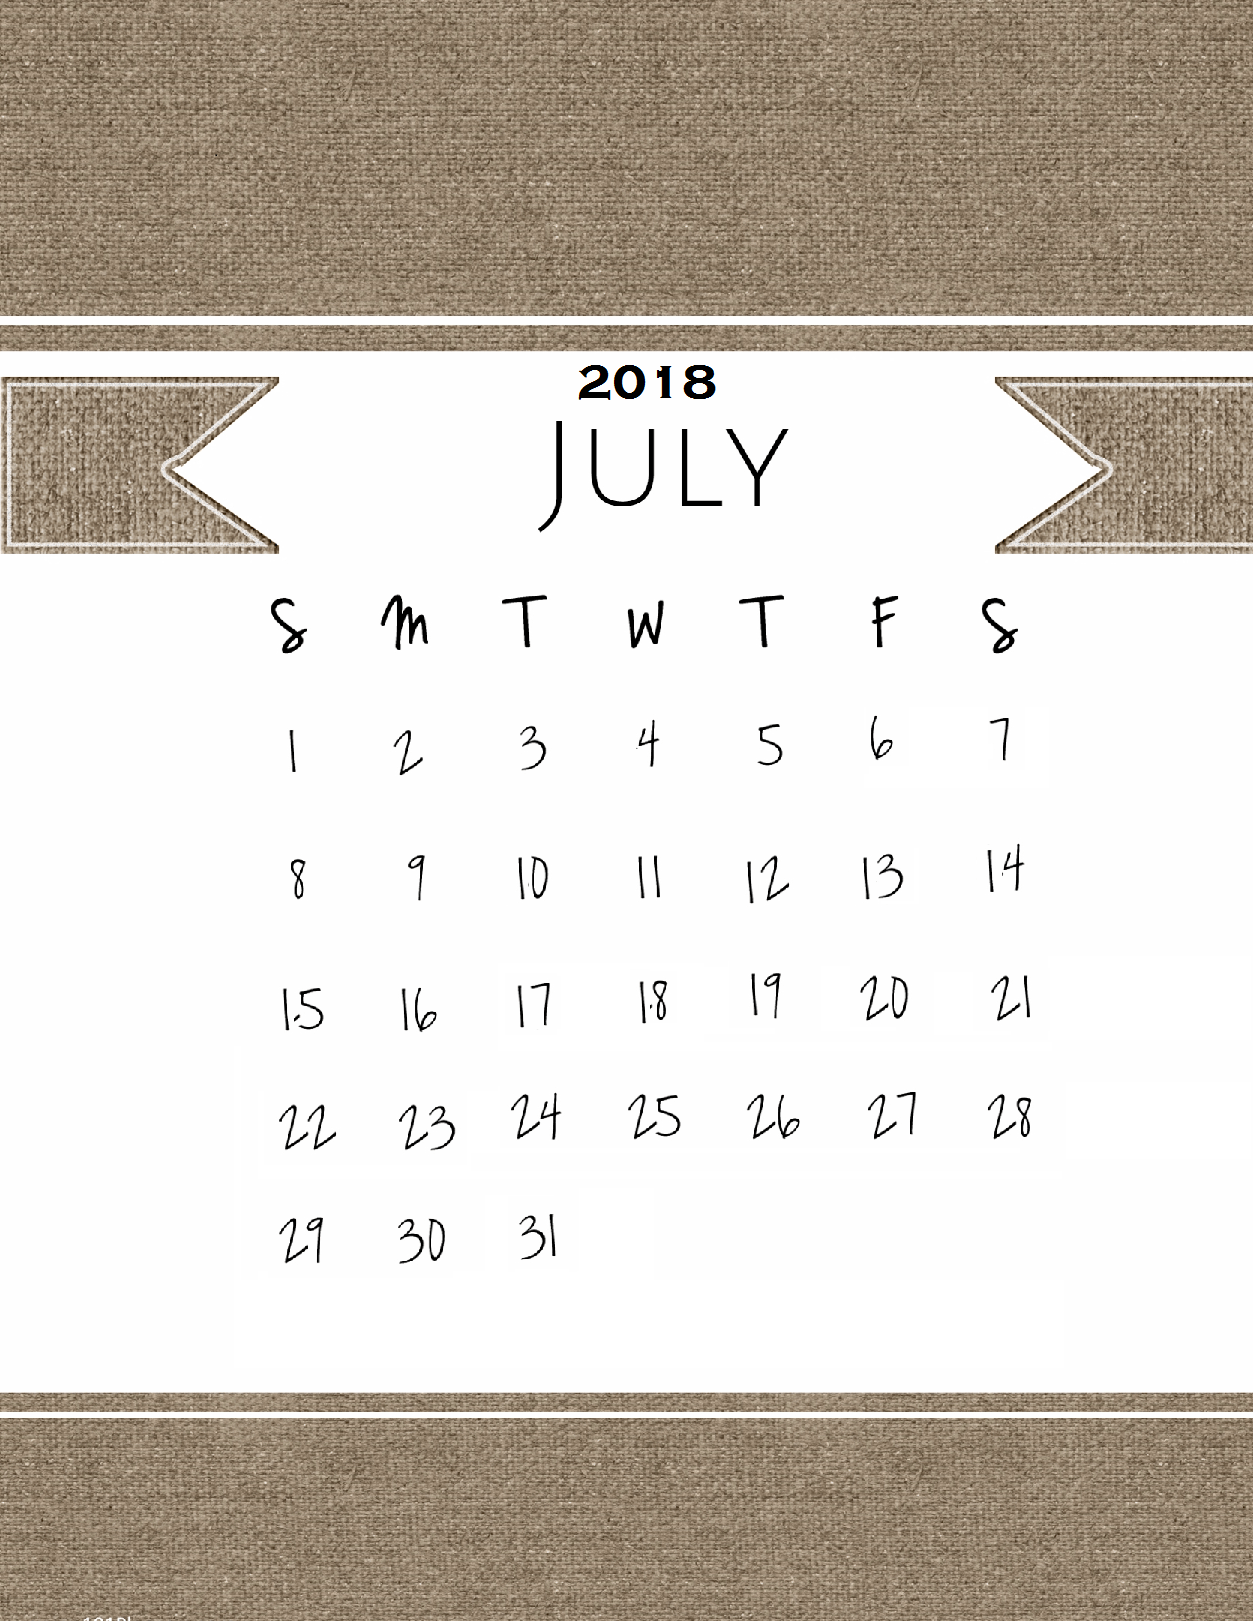 Customize July 2018 Calendar